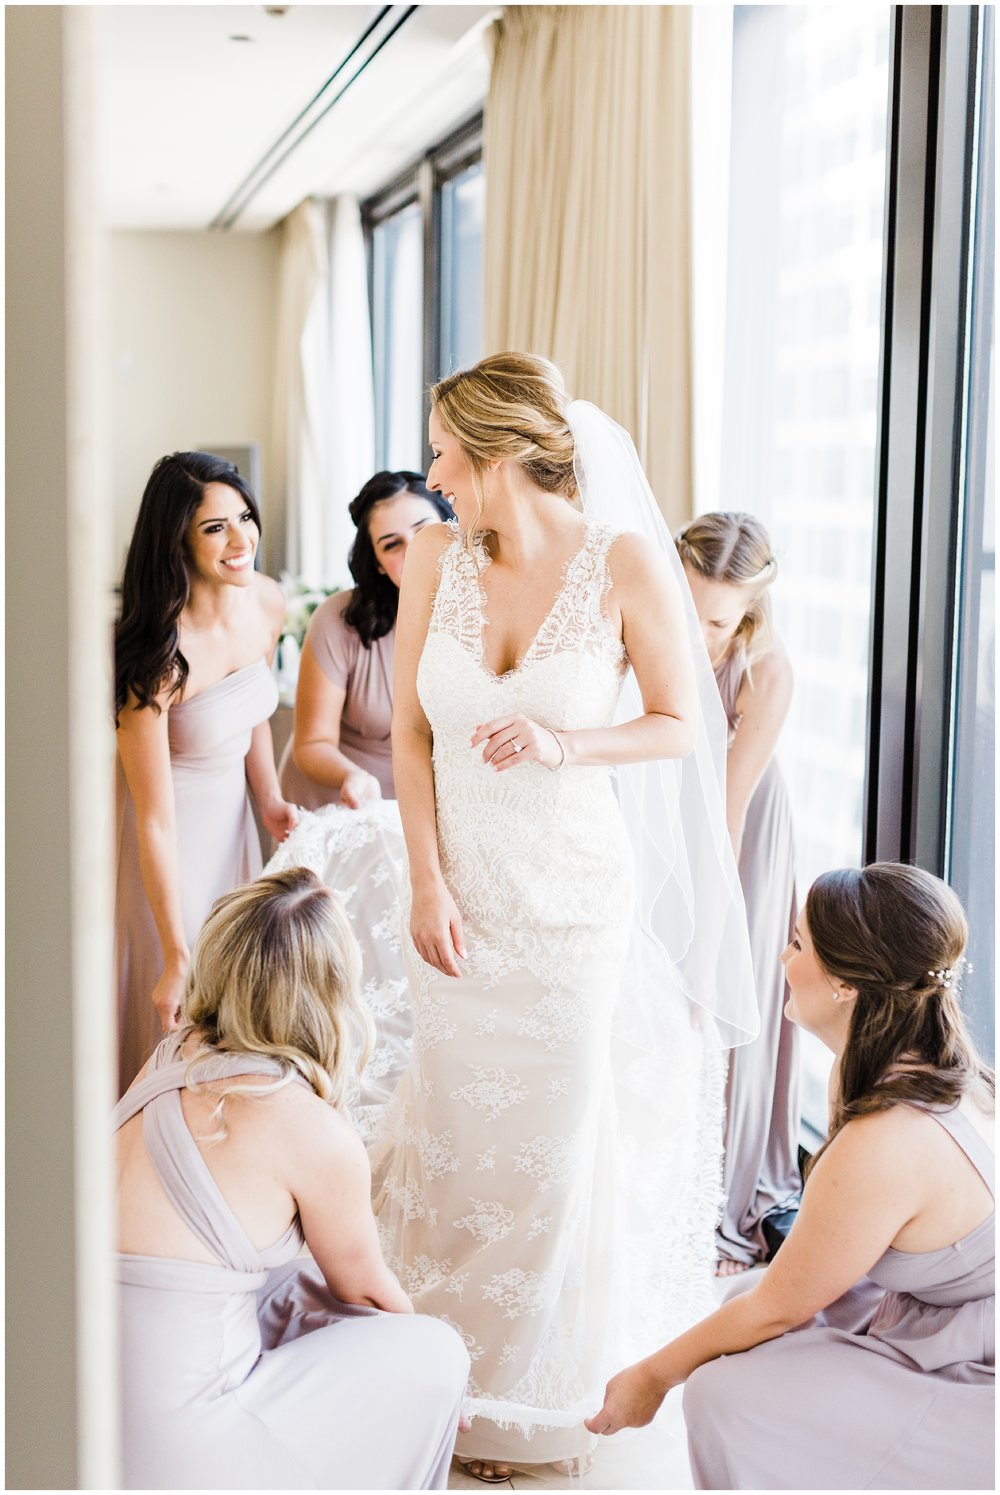 RebeccaHaleyPhotography_Denverweddingphotographer_Denverbride_coloradobride_chicagobride_chicagowedding_tribunetowerwedding_chicagoweddingphotographer_0014.jpg